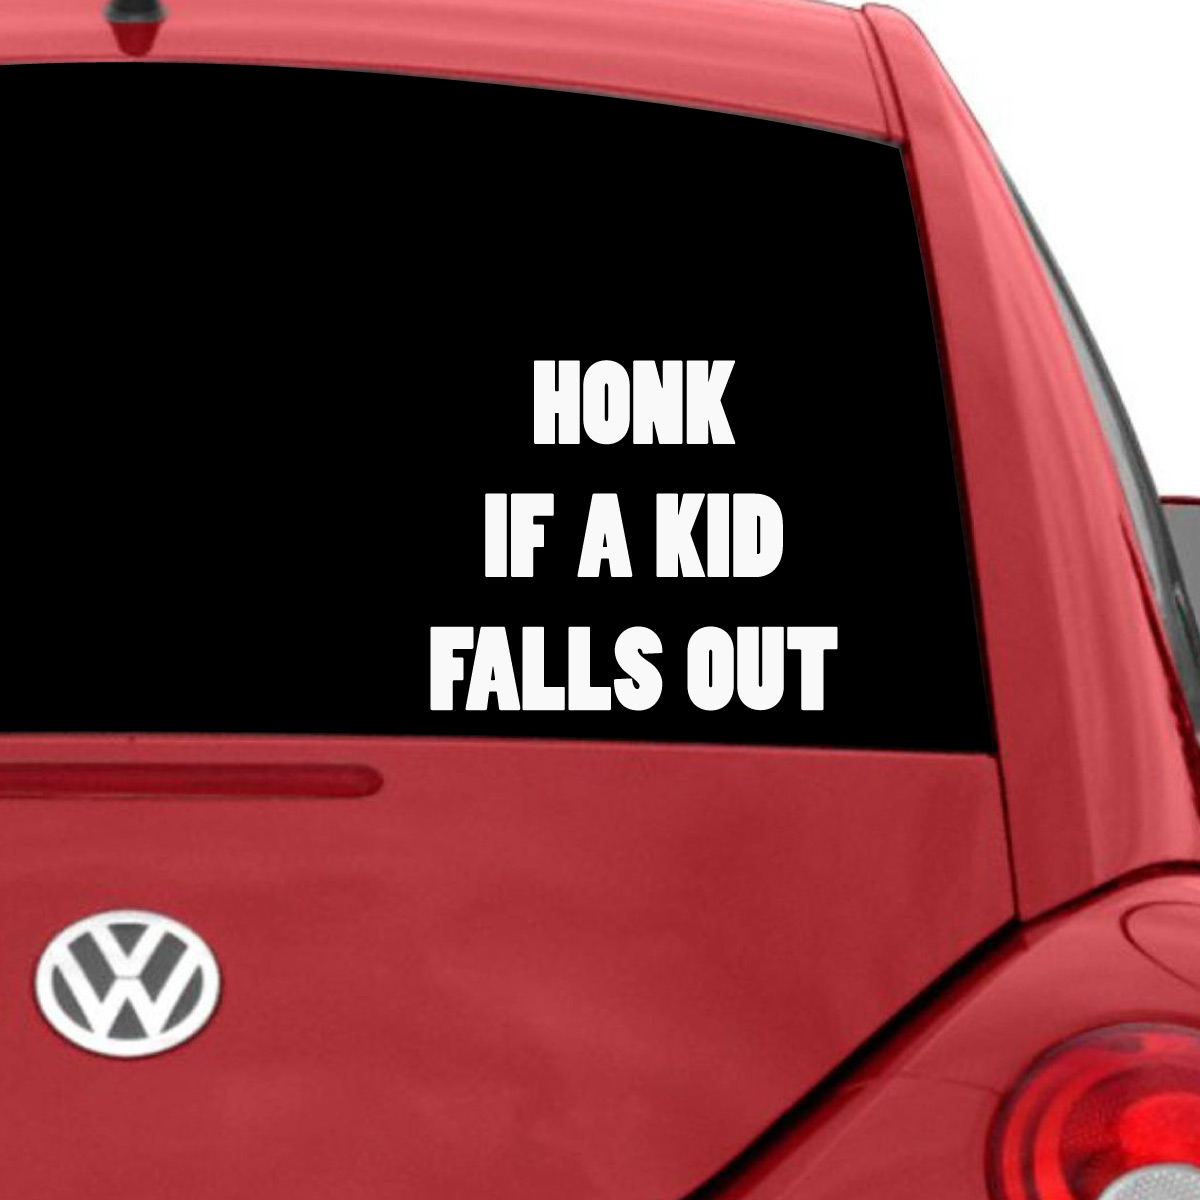 Brake Quotes Words & Quotes Car Decals  The Decal Guru